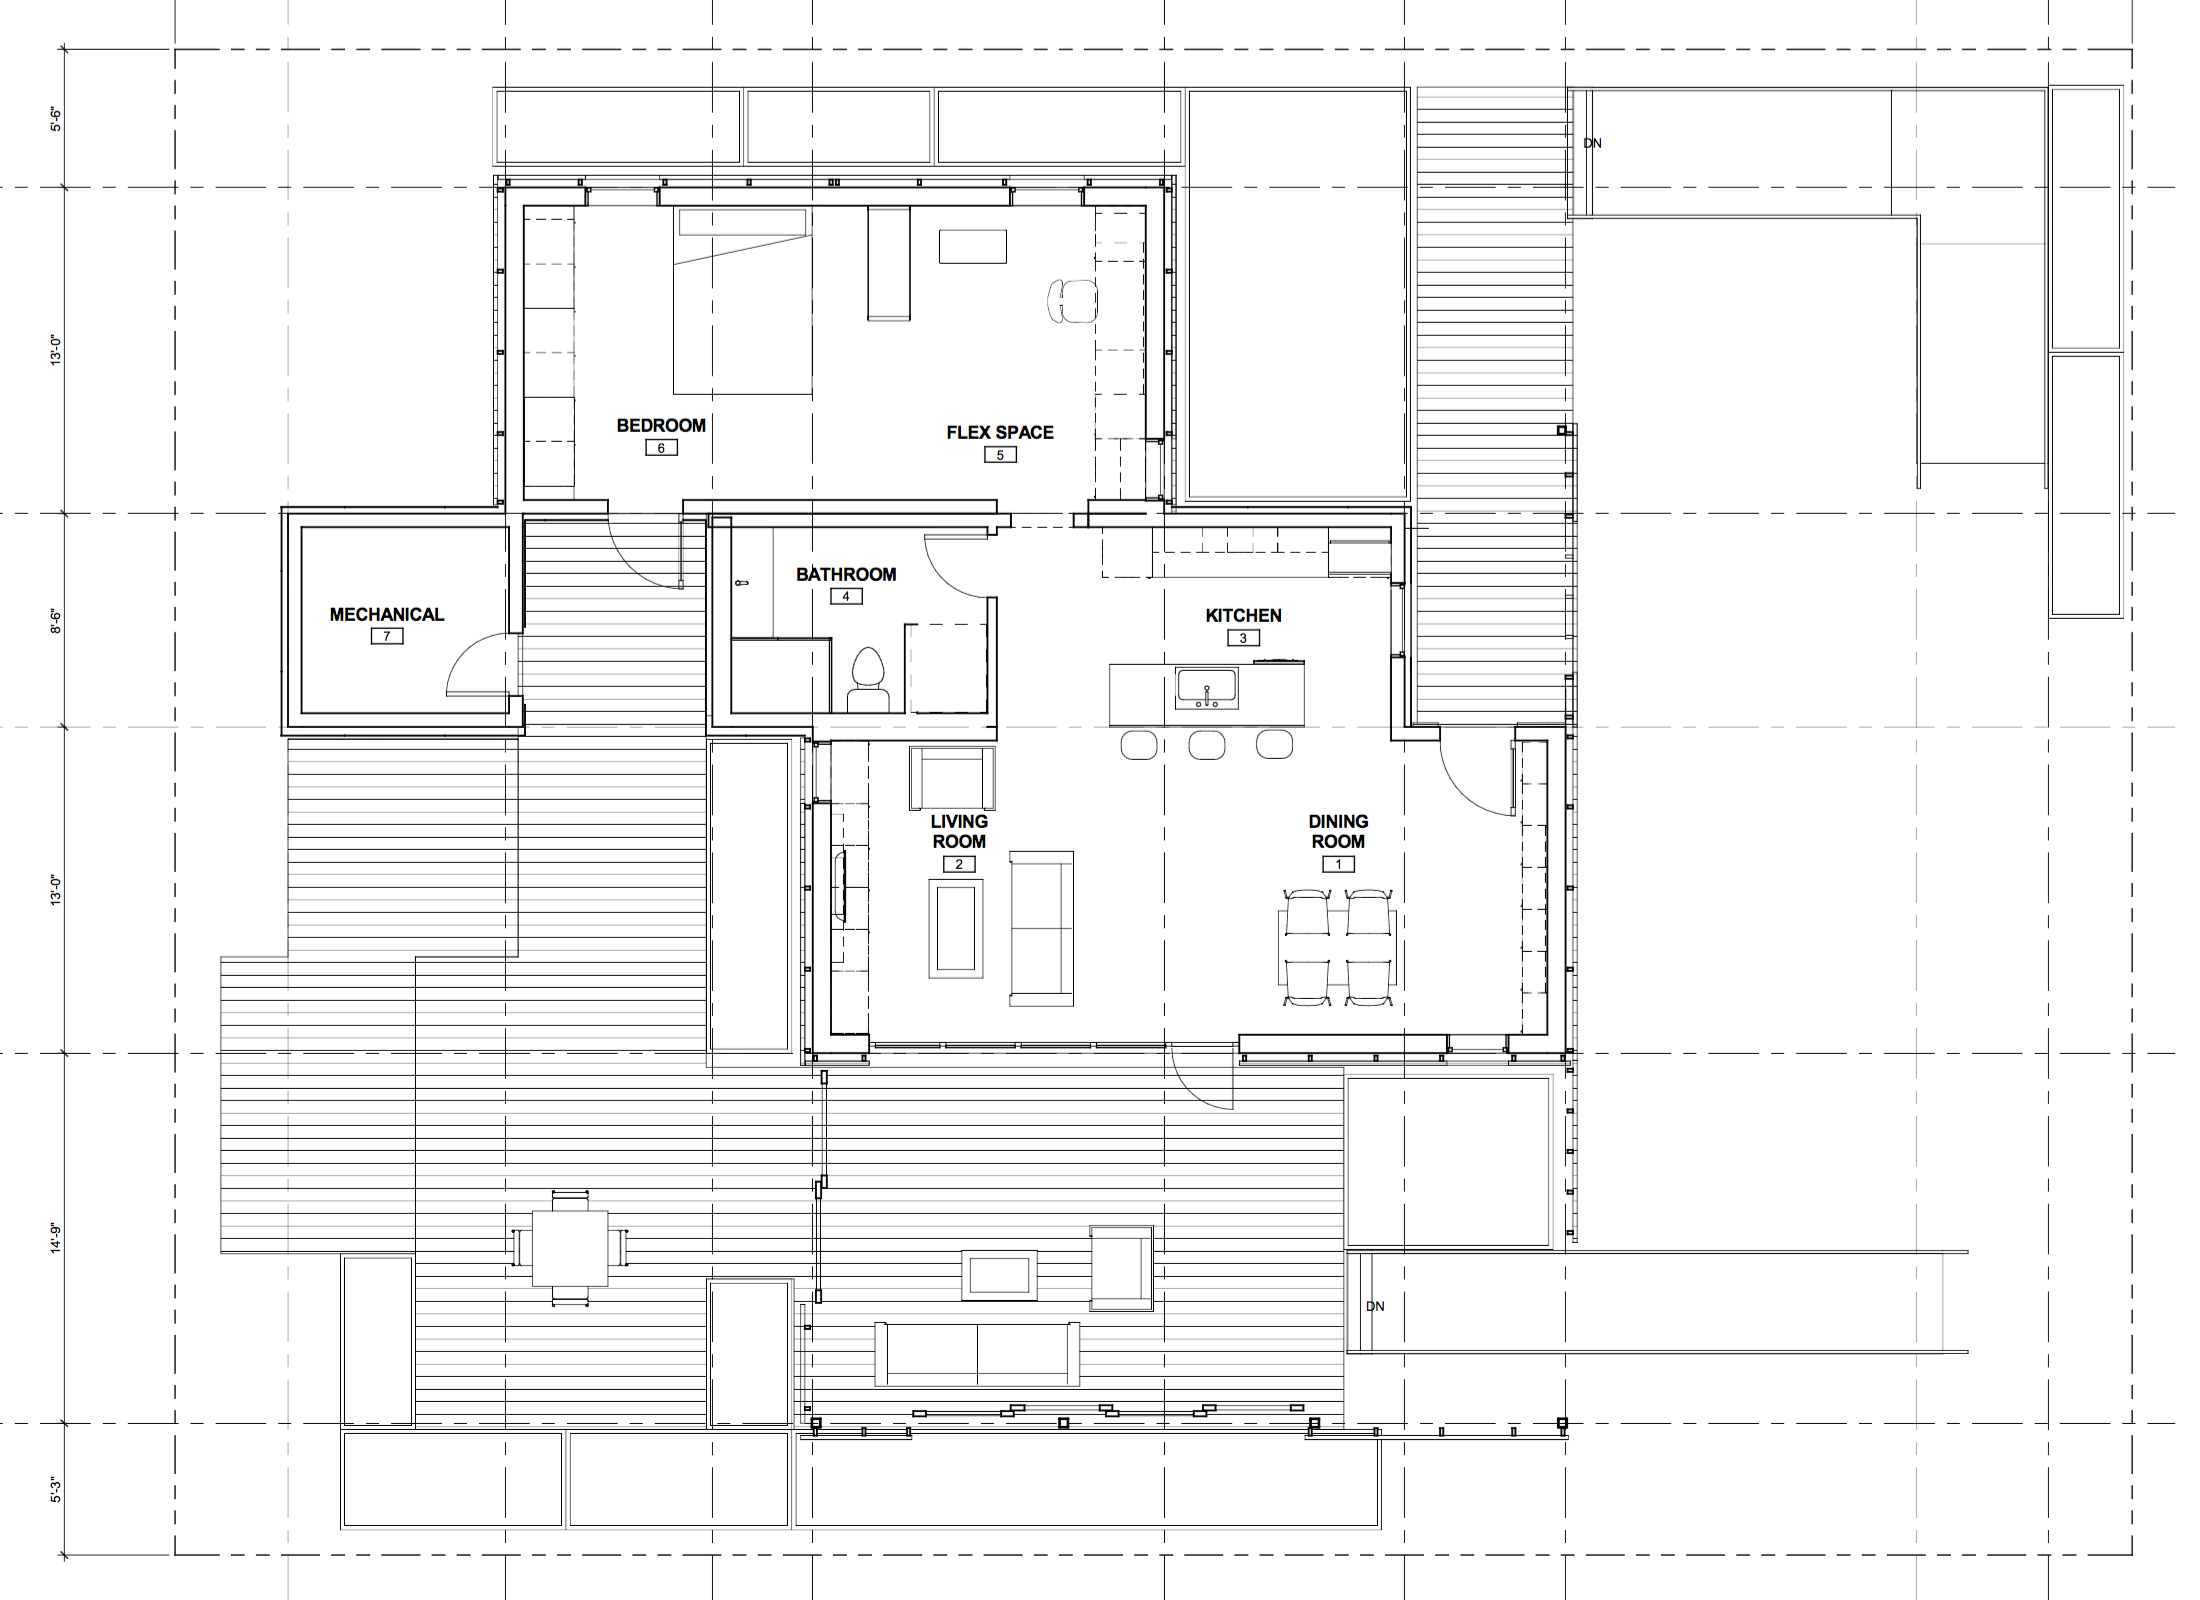 INhouse An Entry At Solar Decathlon 2015 Has A Covering Of Redwood Strips To Floor Plan